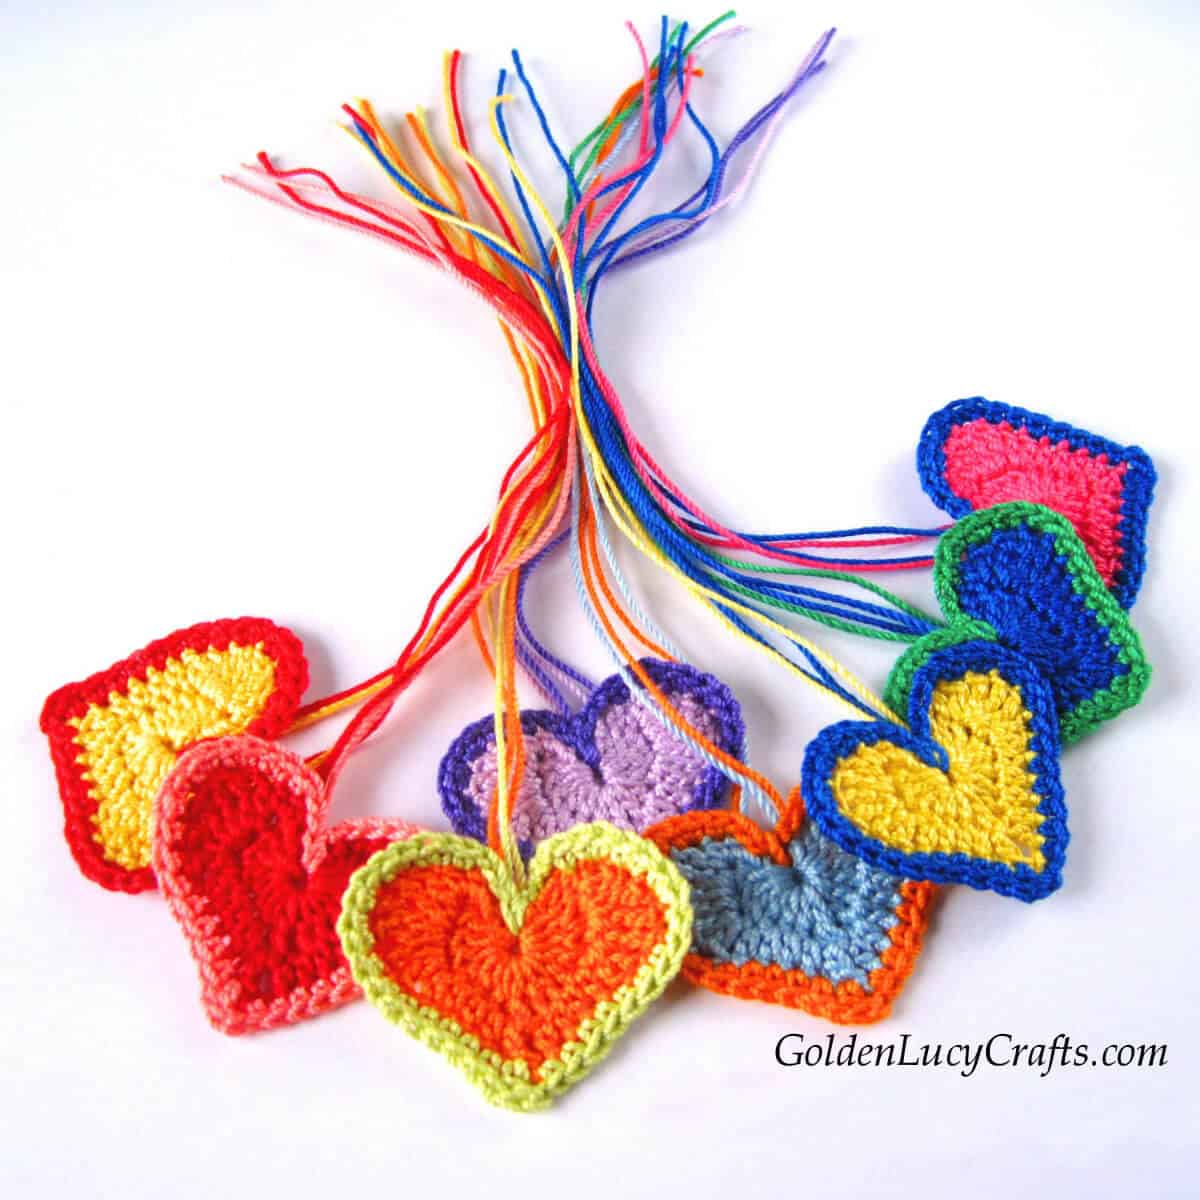 Bunch of crocheted colorful hearts.